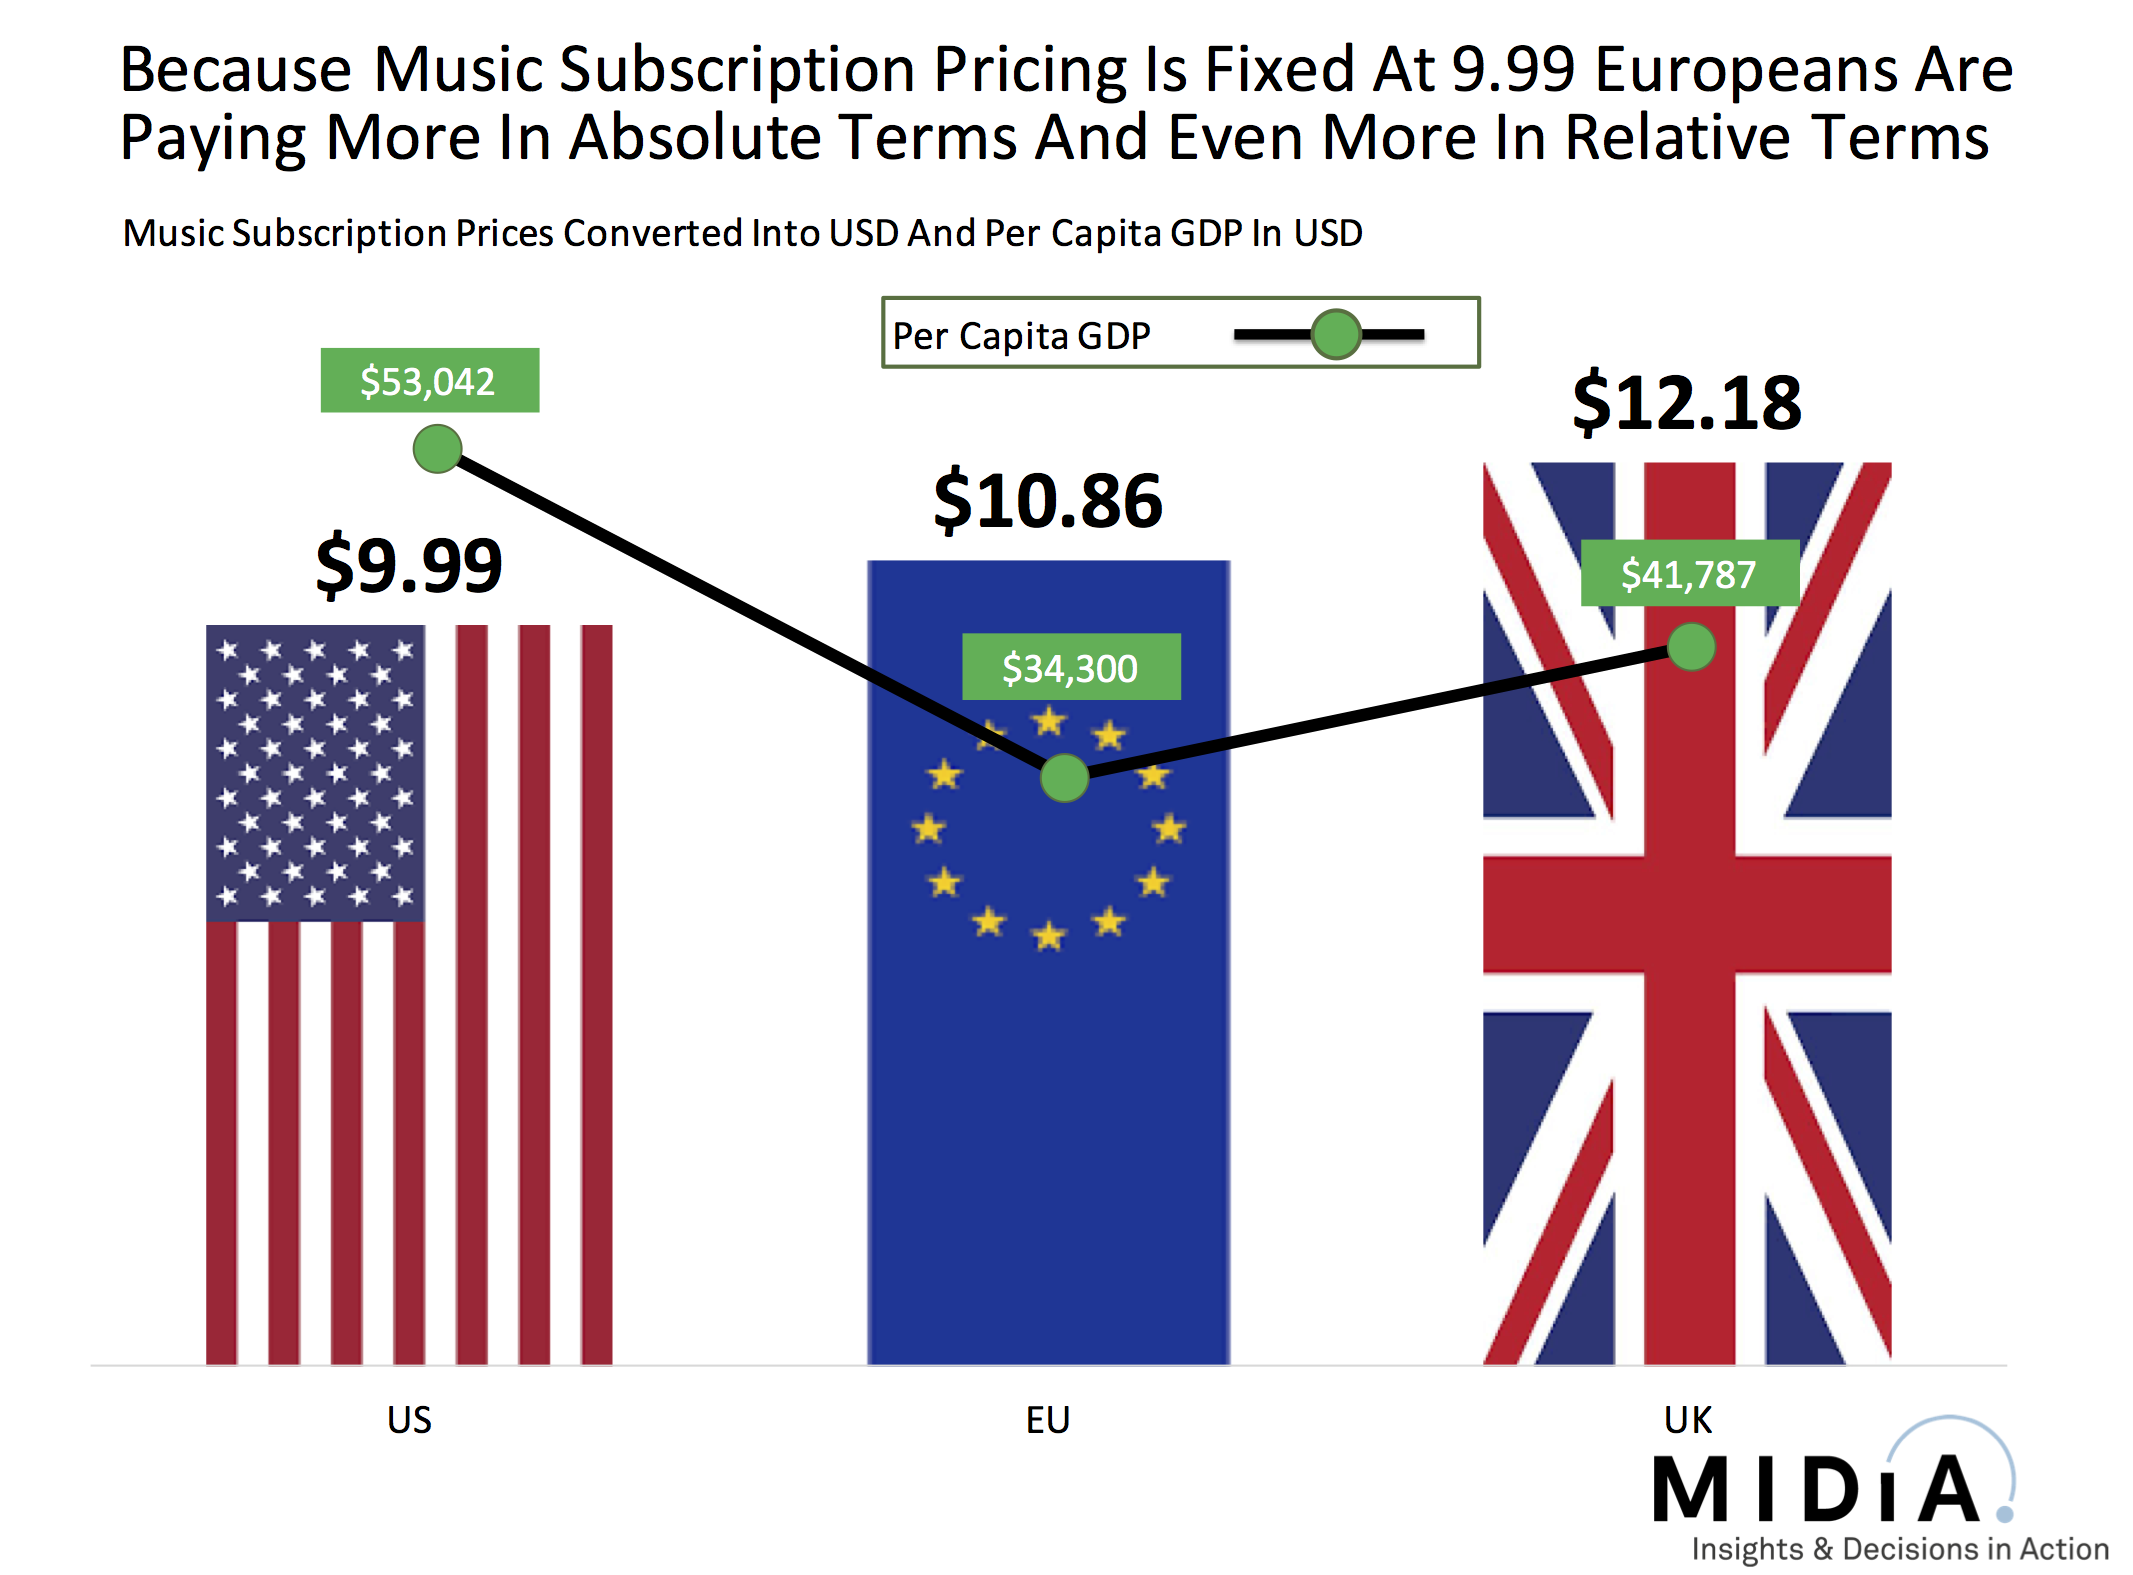 Cover image for Here's Why The Music Industry Needs To Dump Non-Discretionary Pricing